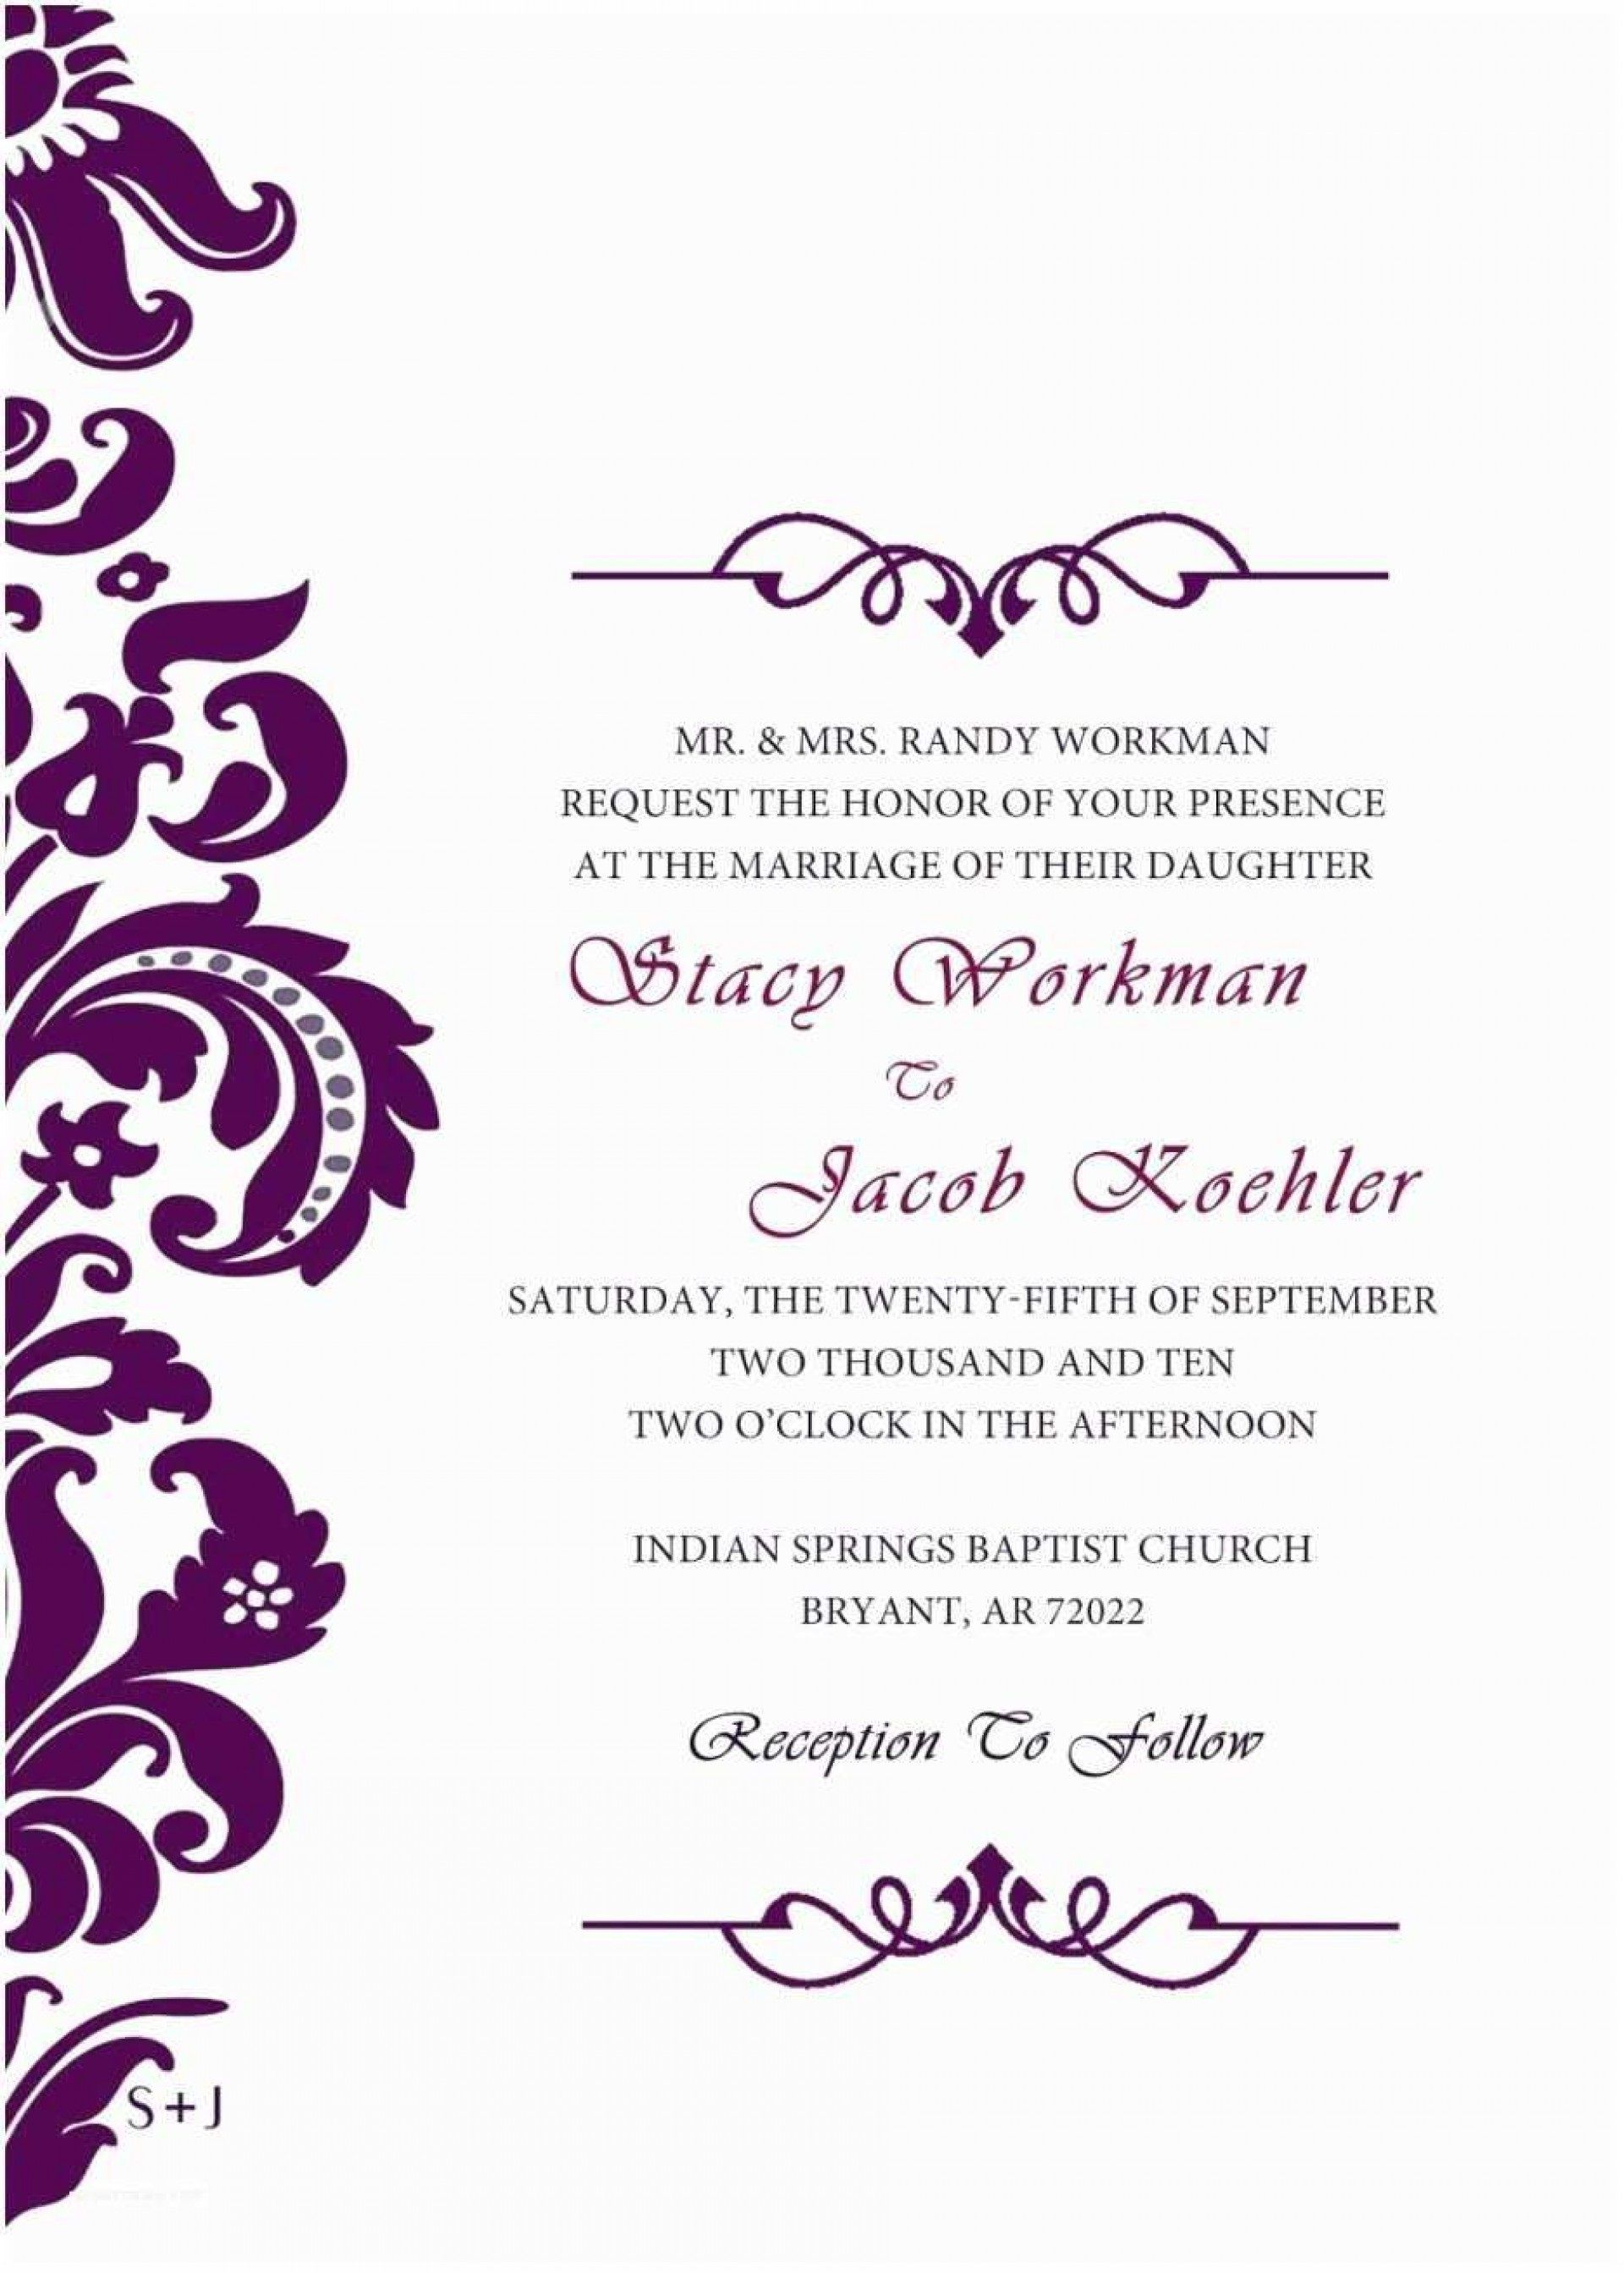 008 Excellent Free Online Indian Invitation Template High Resolution  Templates Engagement Card Maker WeddingFull